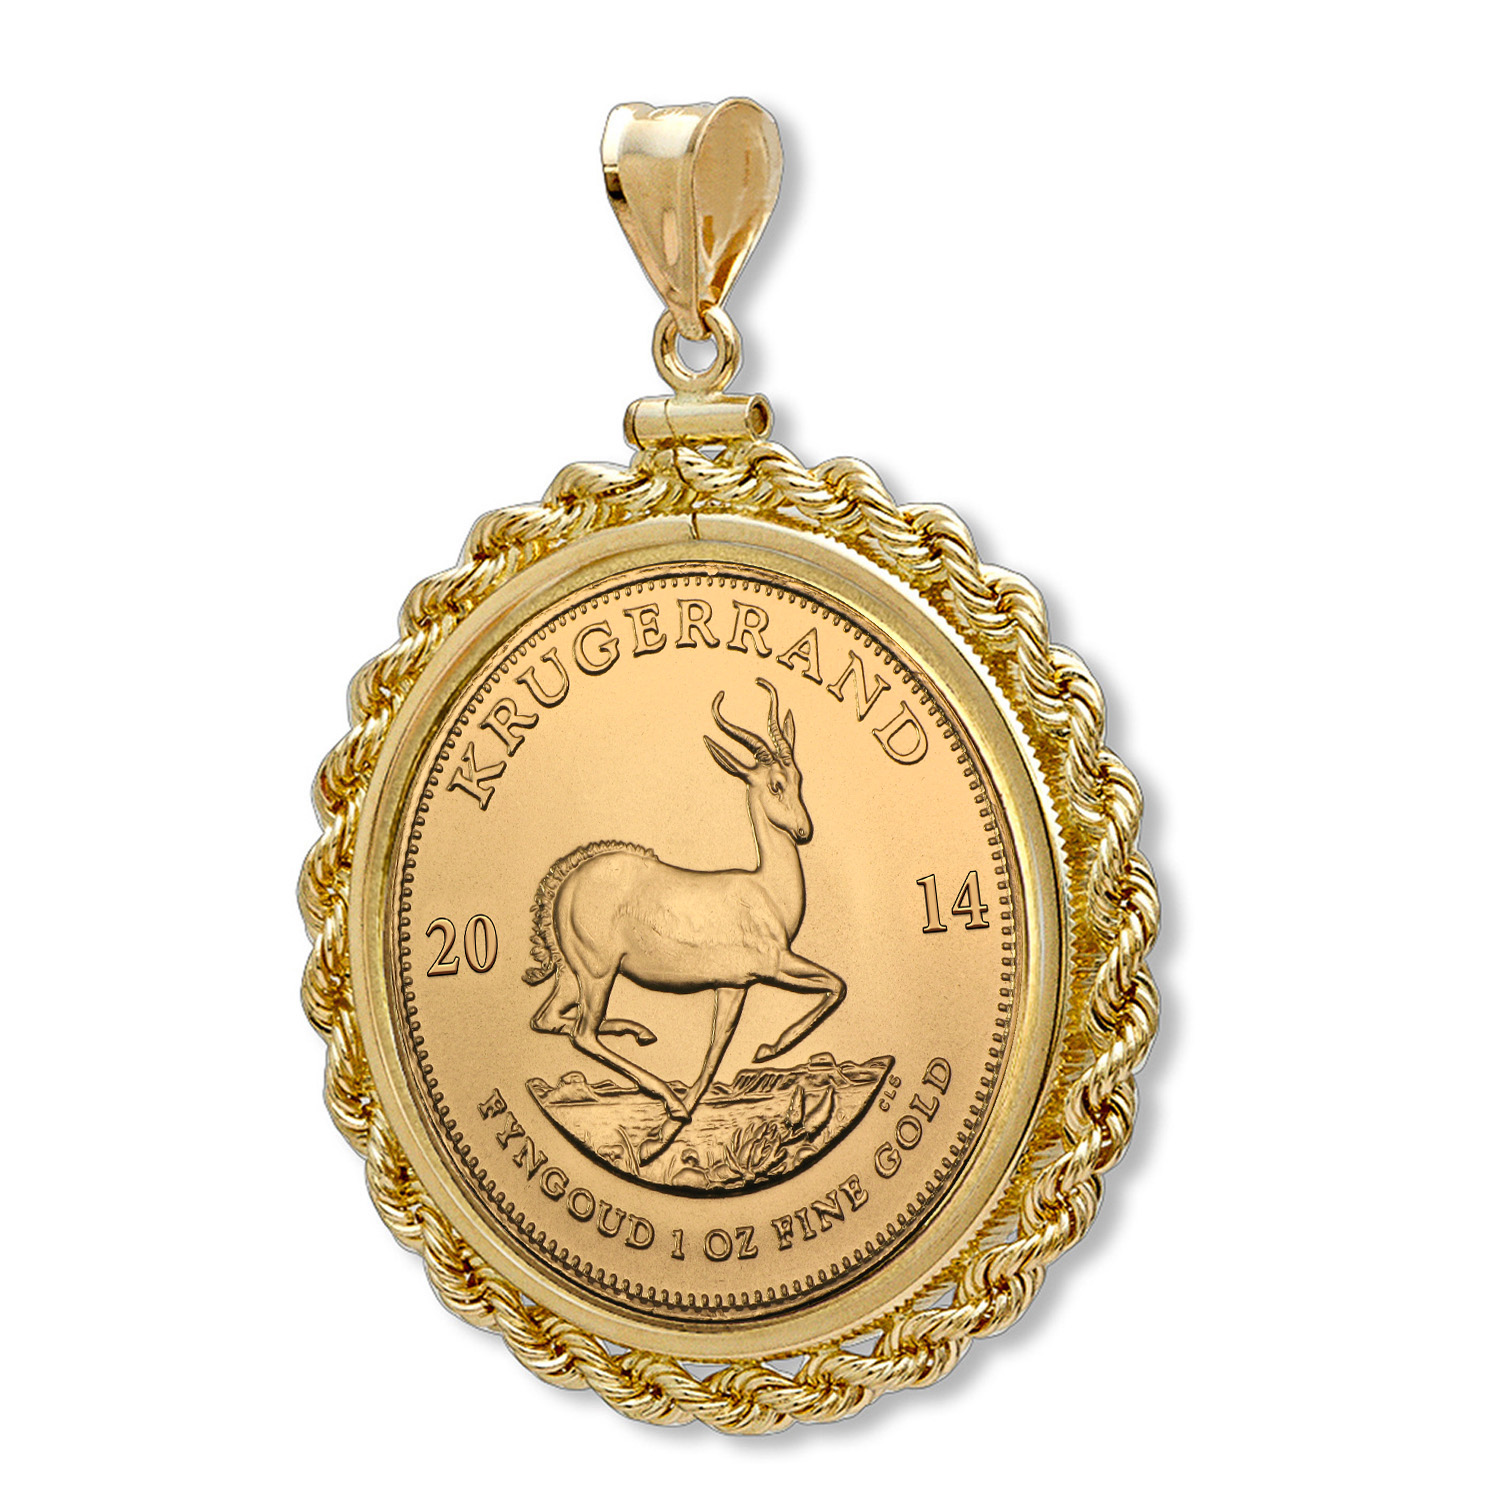 2014 1 oz Gold Krugerrand Pendant (Rope-ScrewTop Bezel)